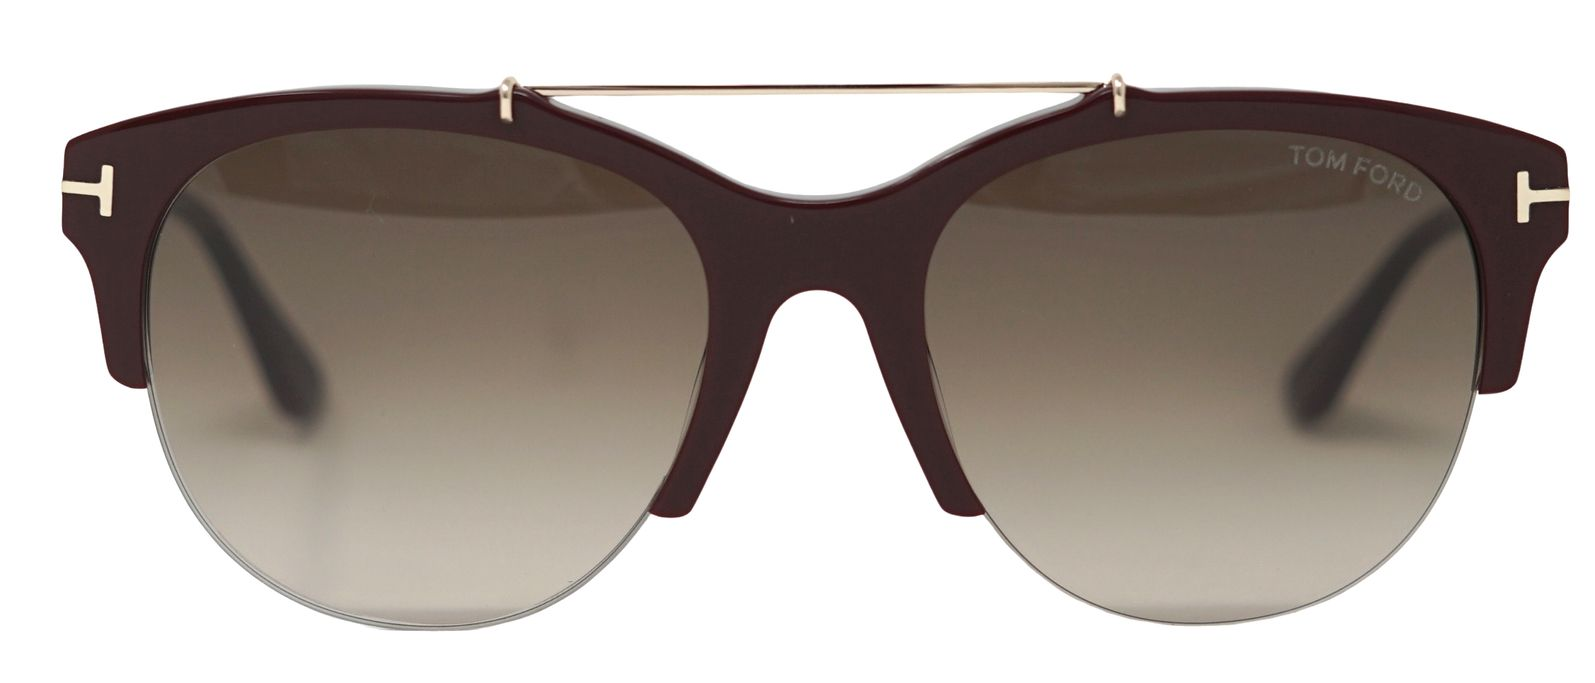 Tom Ford Adrenne Sunglasses FT0517 69T